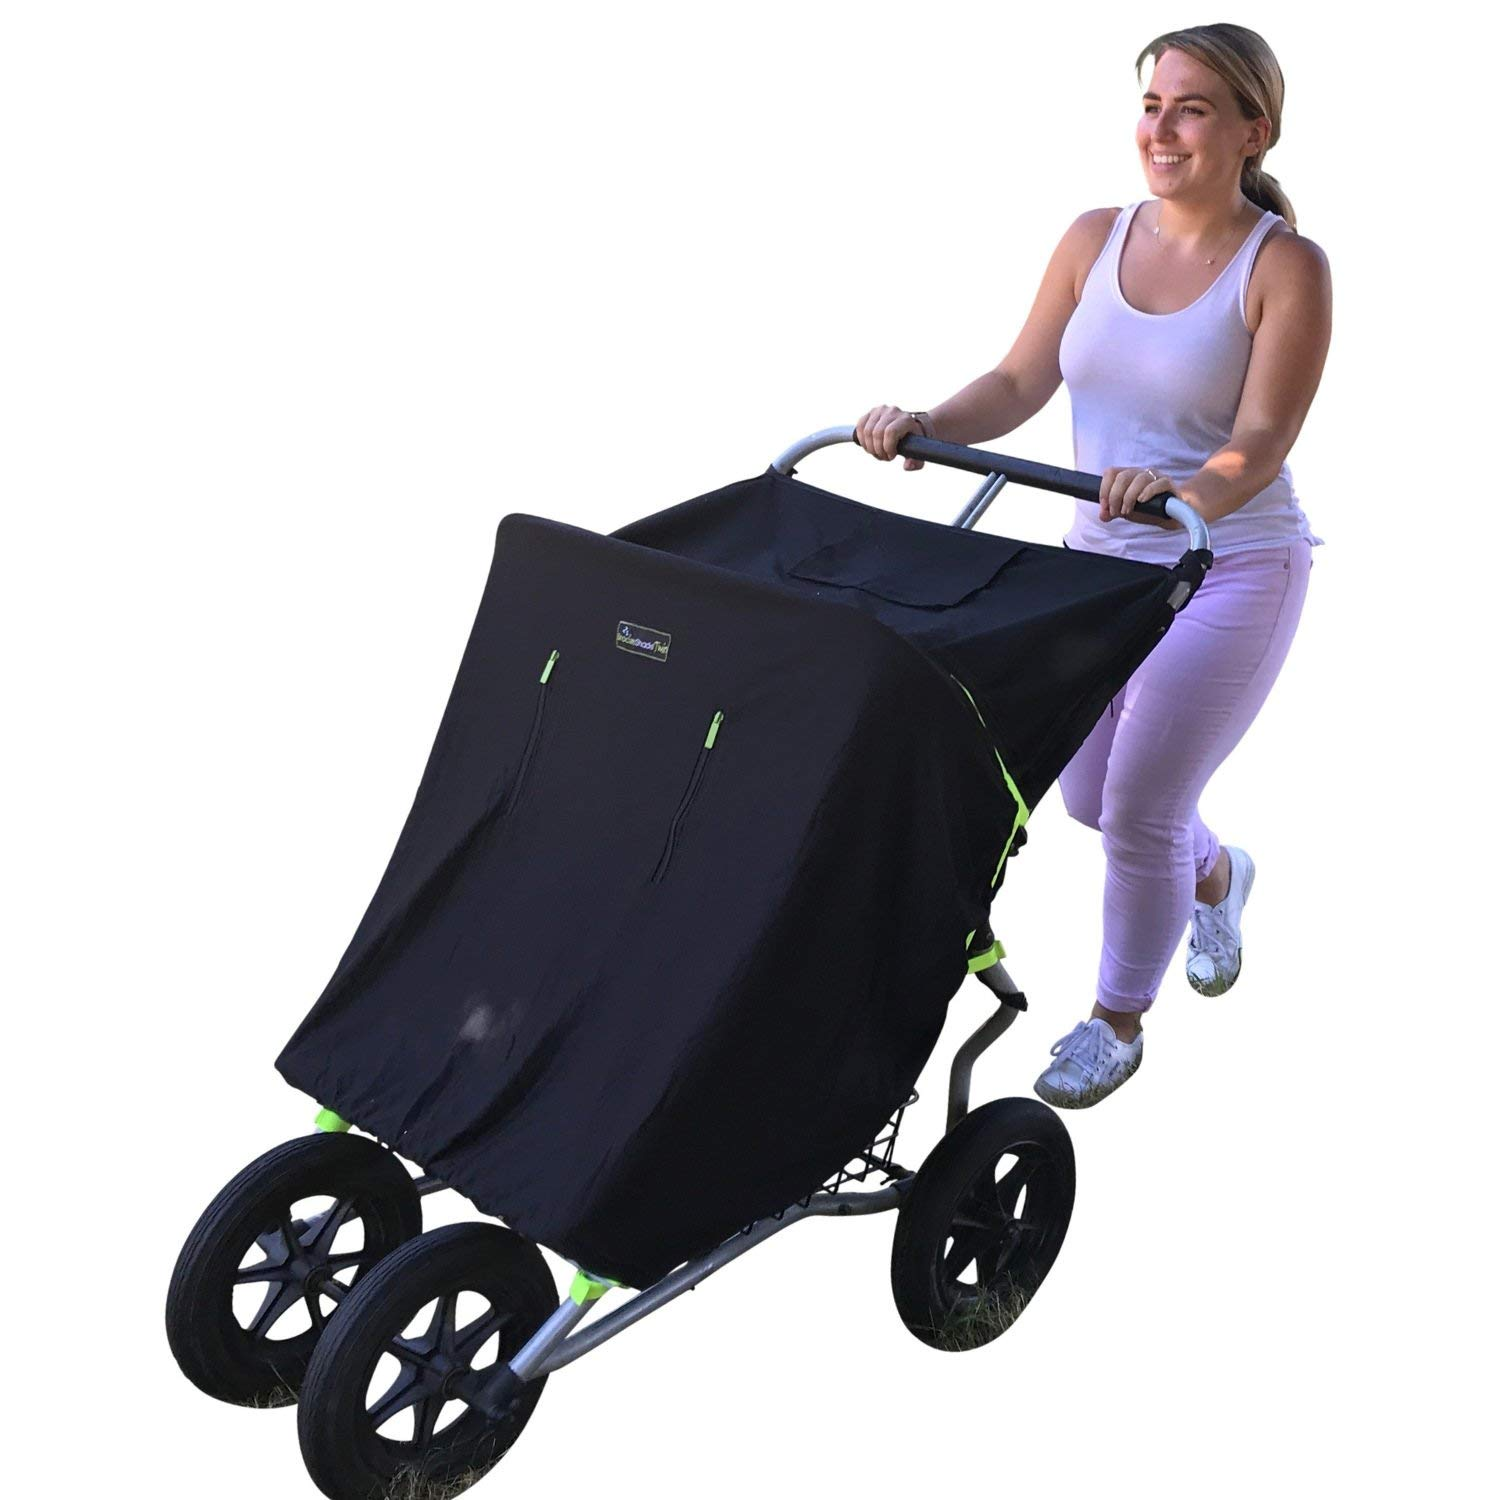 Double Stroller Cover & Sun Shade | Award-Winning Blackout Blind and Baby Sleep Aid | Stops 99% of The Sun's Rays | Lets Your Babies nap Safely Anywhere | Universal Fit | SnoozeShade Twin